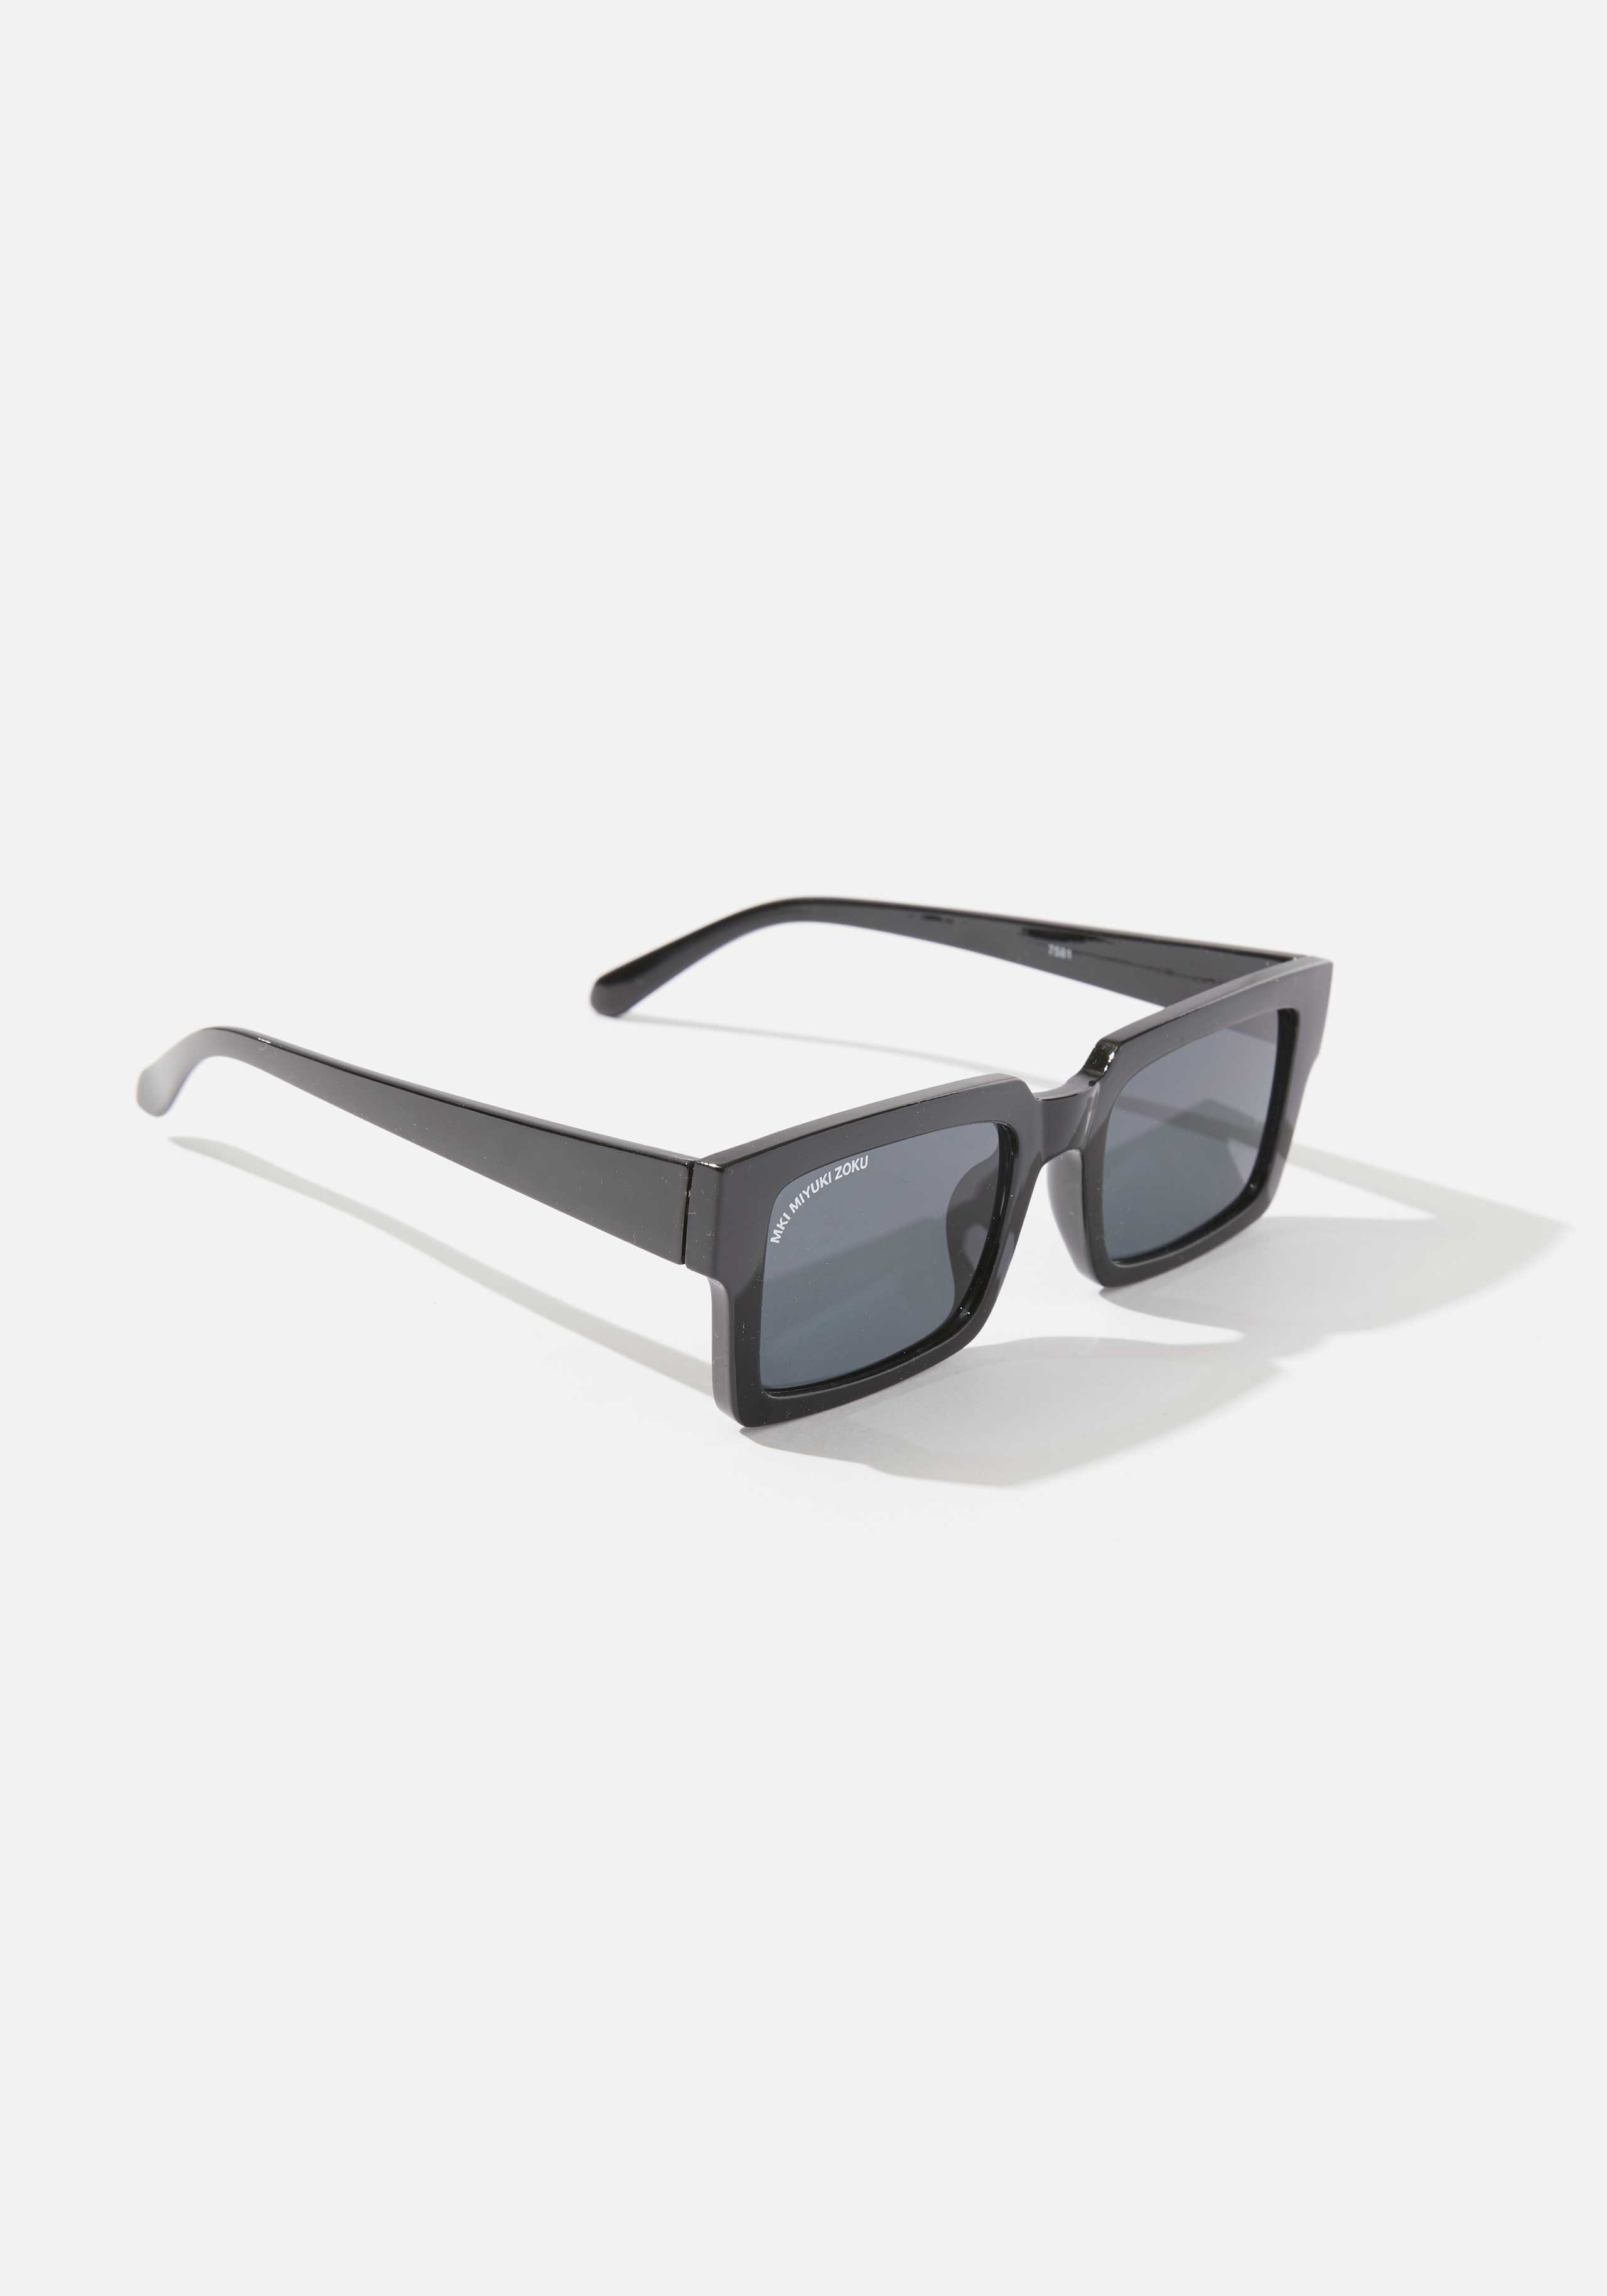 mki moulded convex sunglasses 2